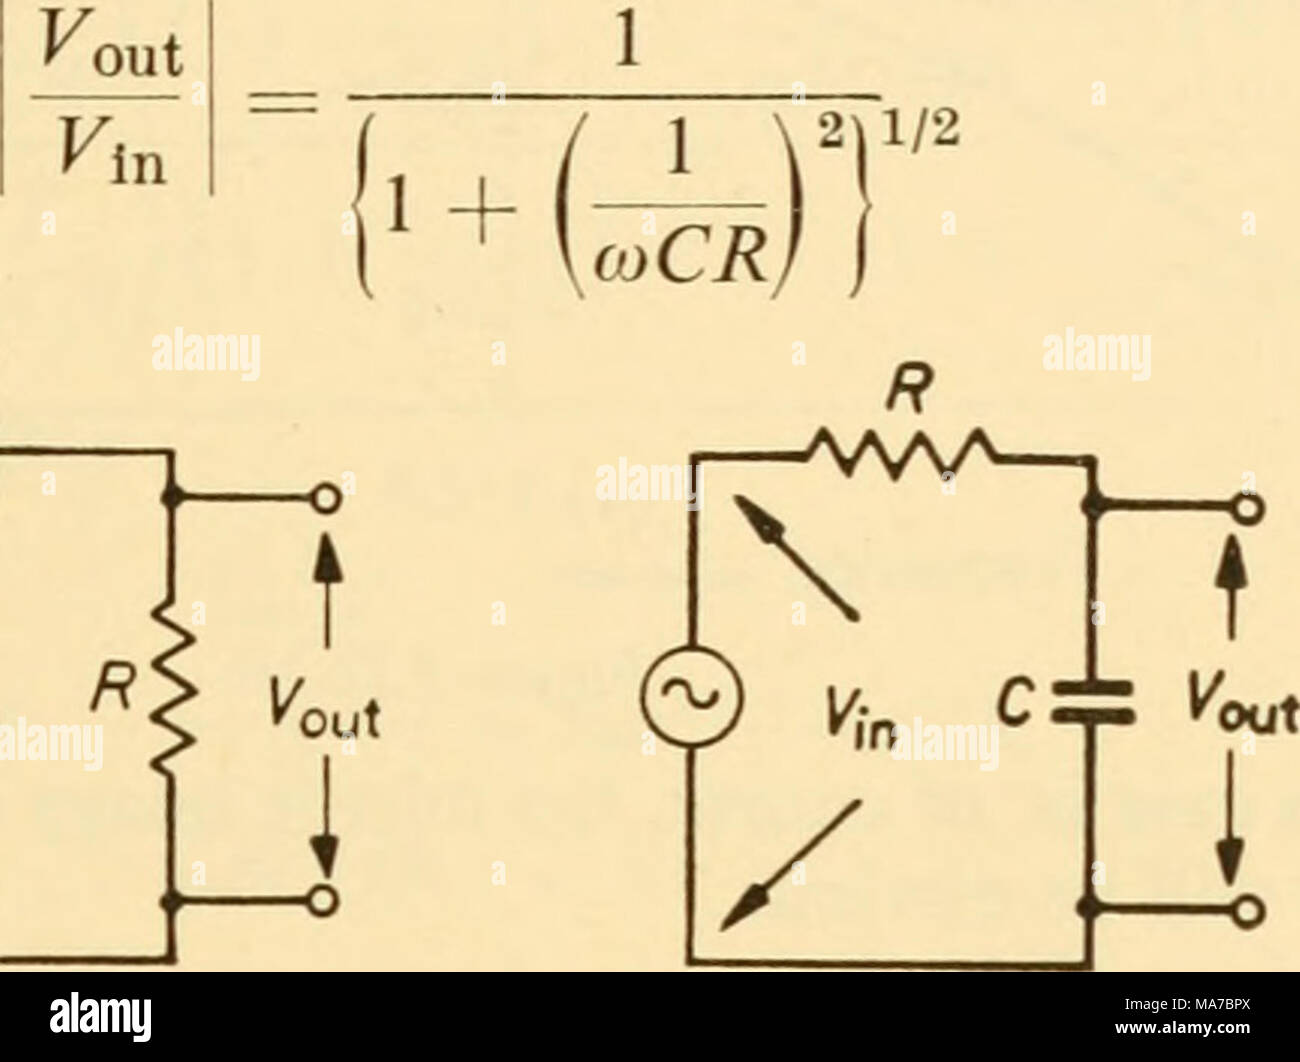 Low Pass Filter Stock Photos Images Alamy Schematic Diagram Electronic Apparatus For Biological Research Kn I K Figure 323 324